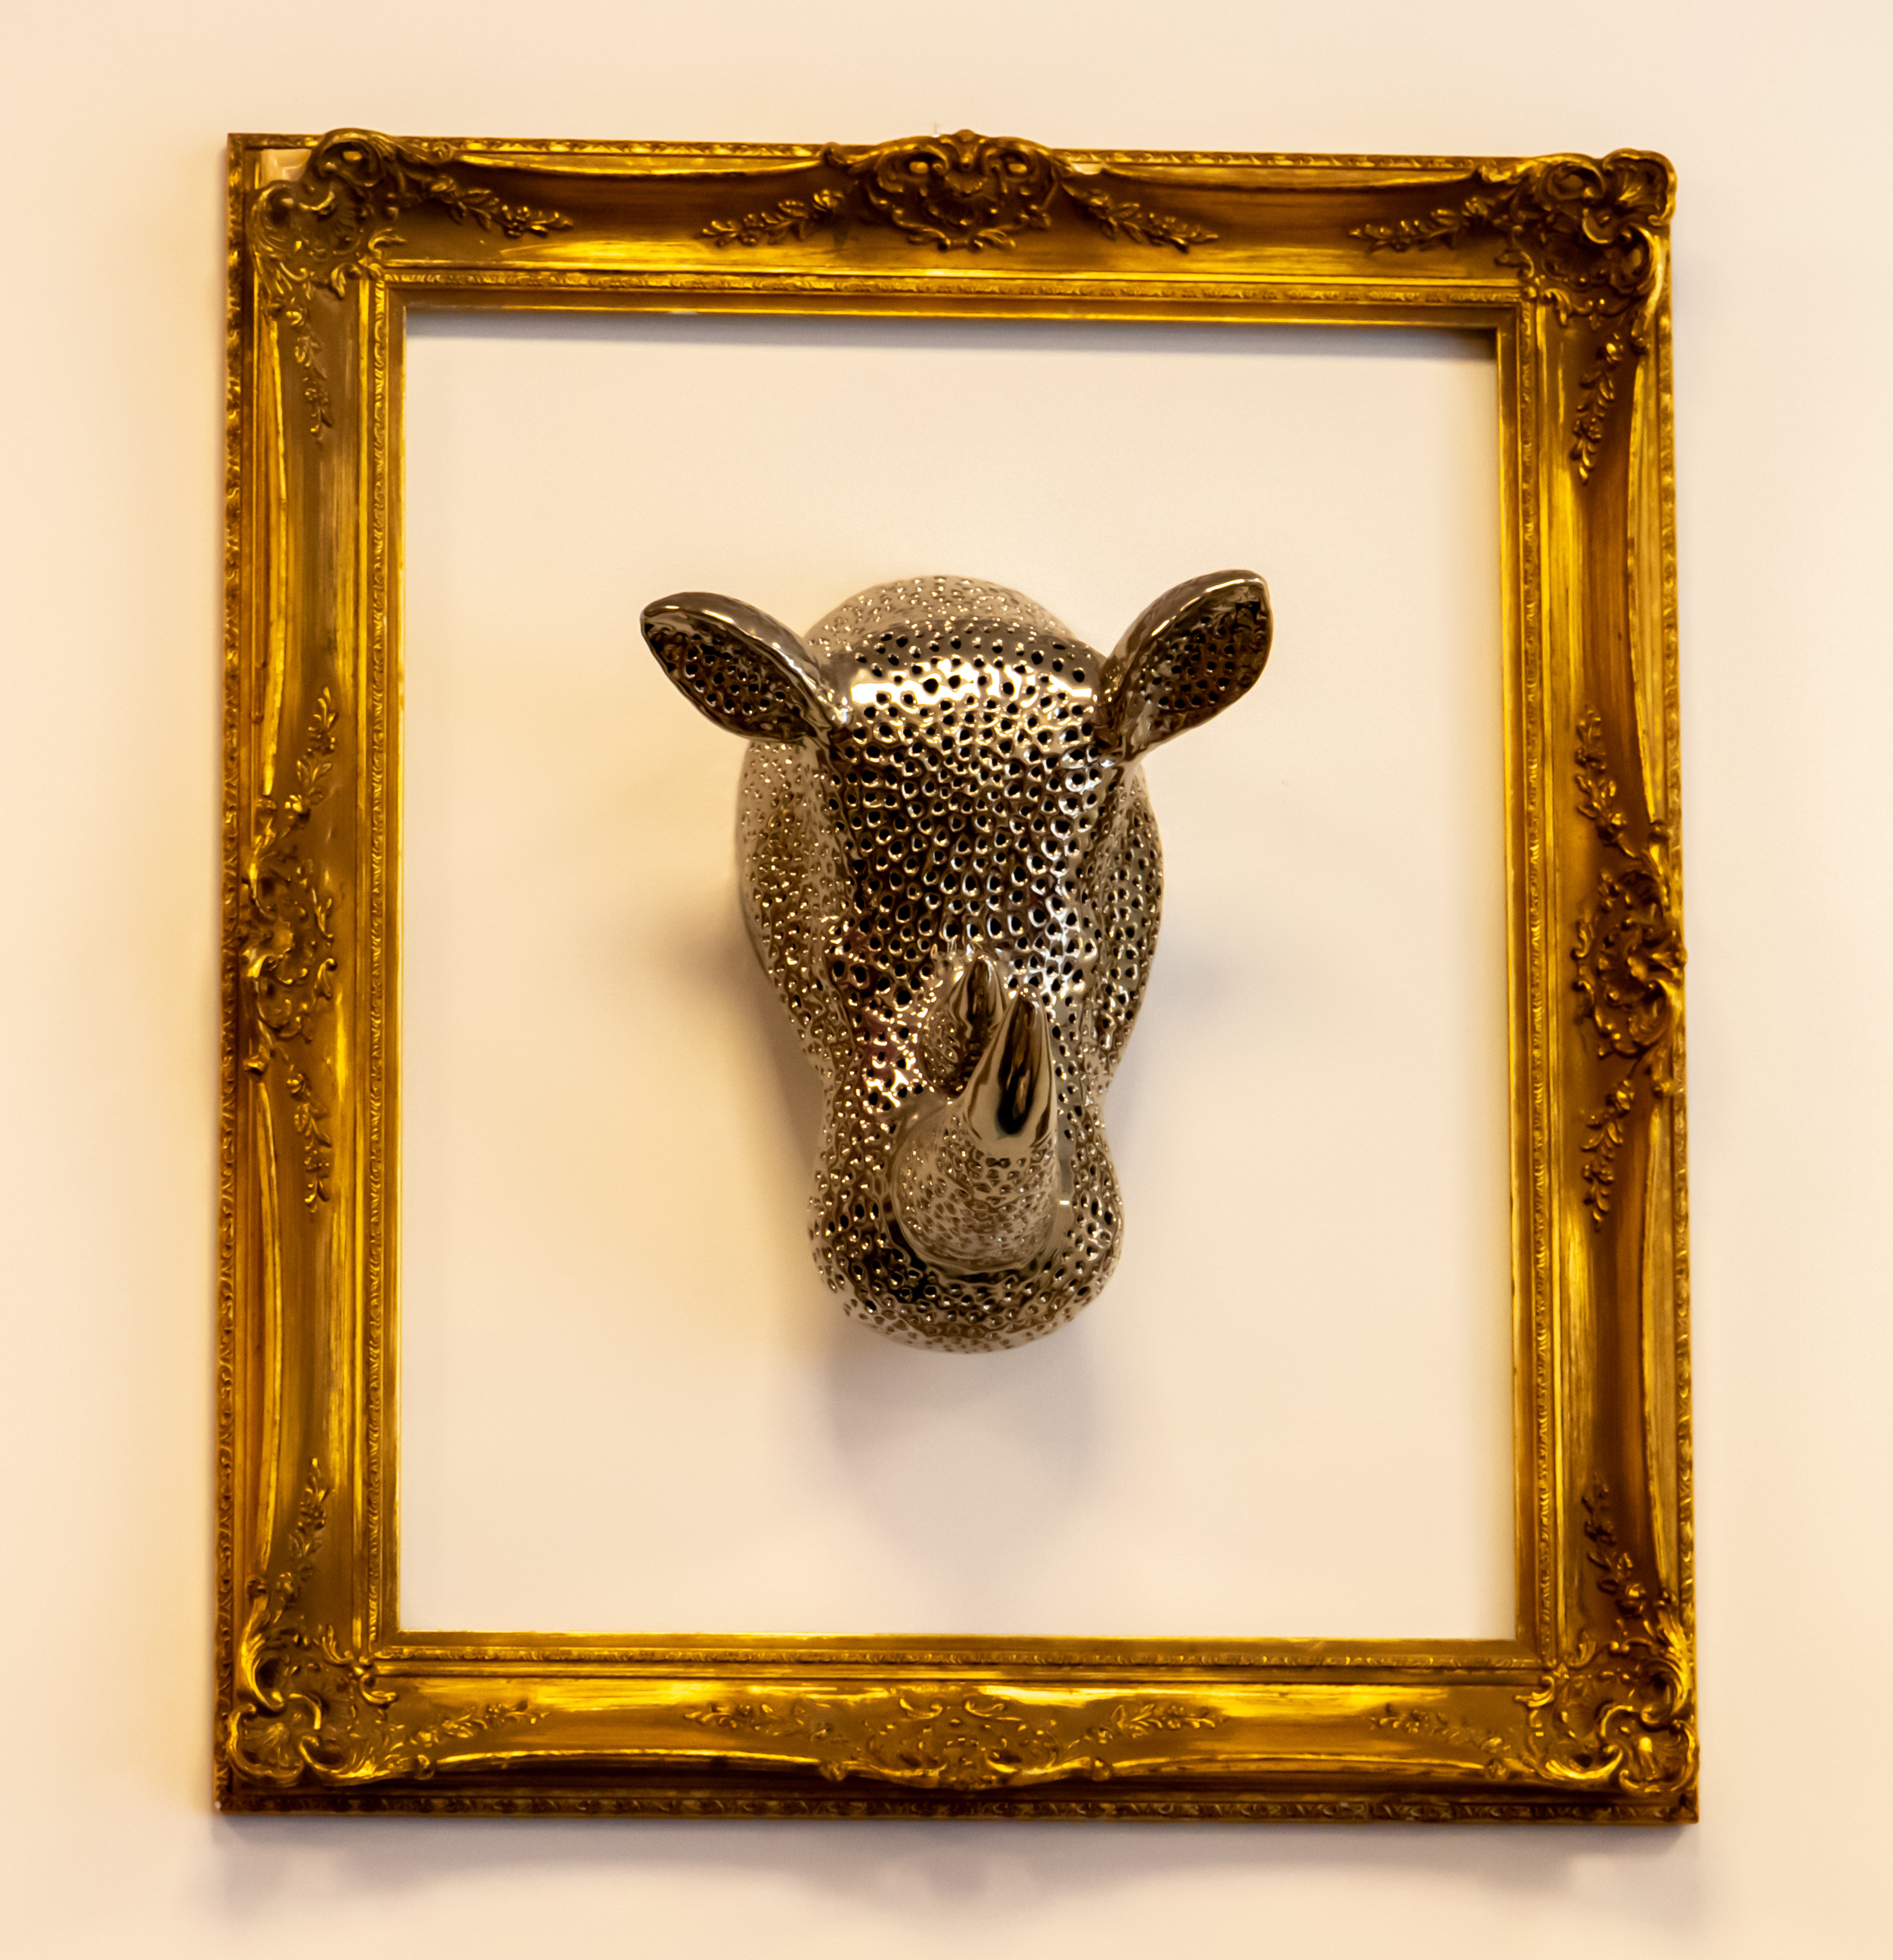 Rhino head in a frame by Clive Wells